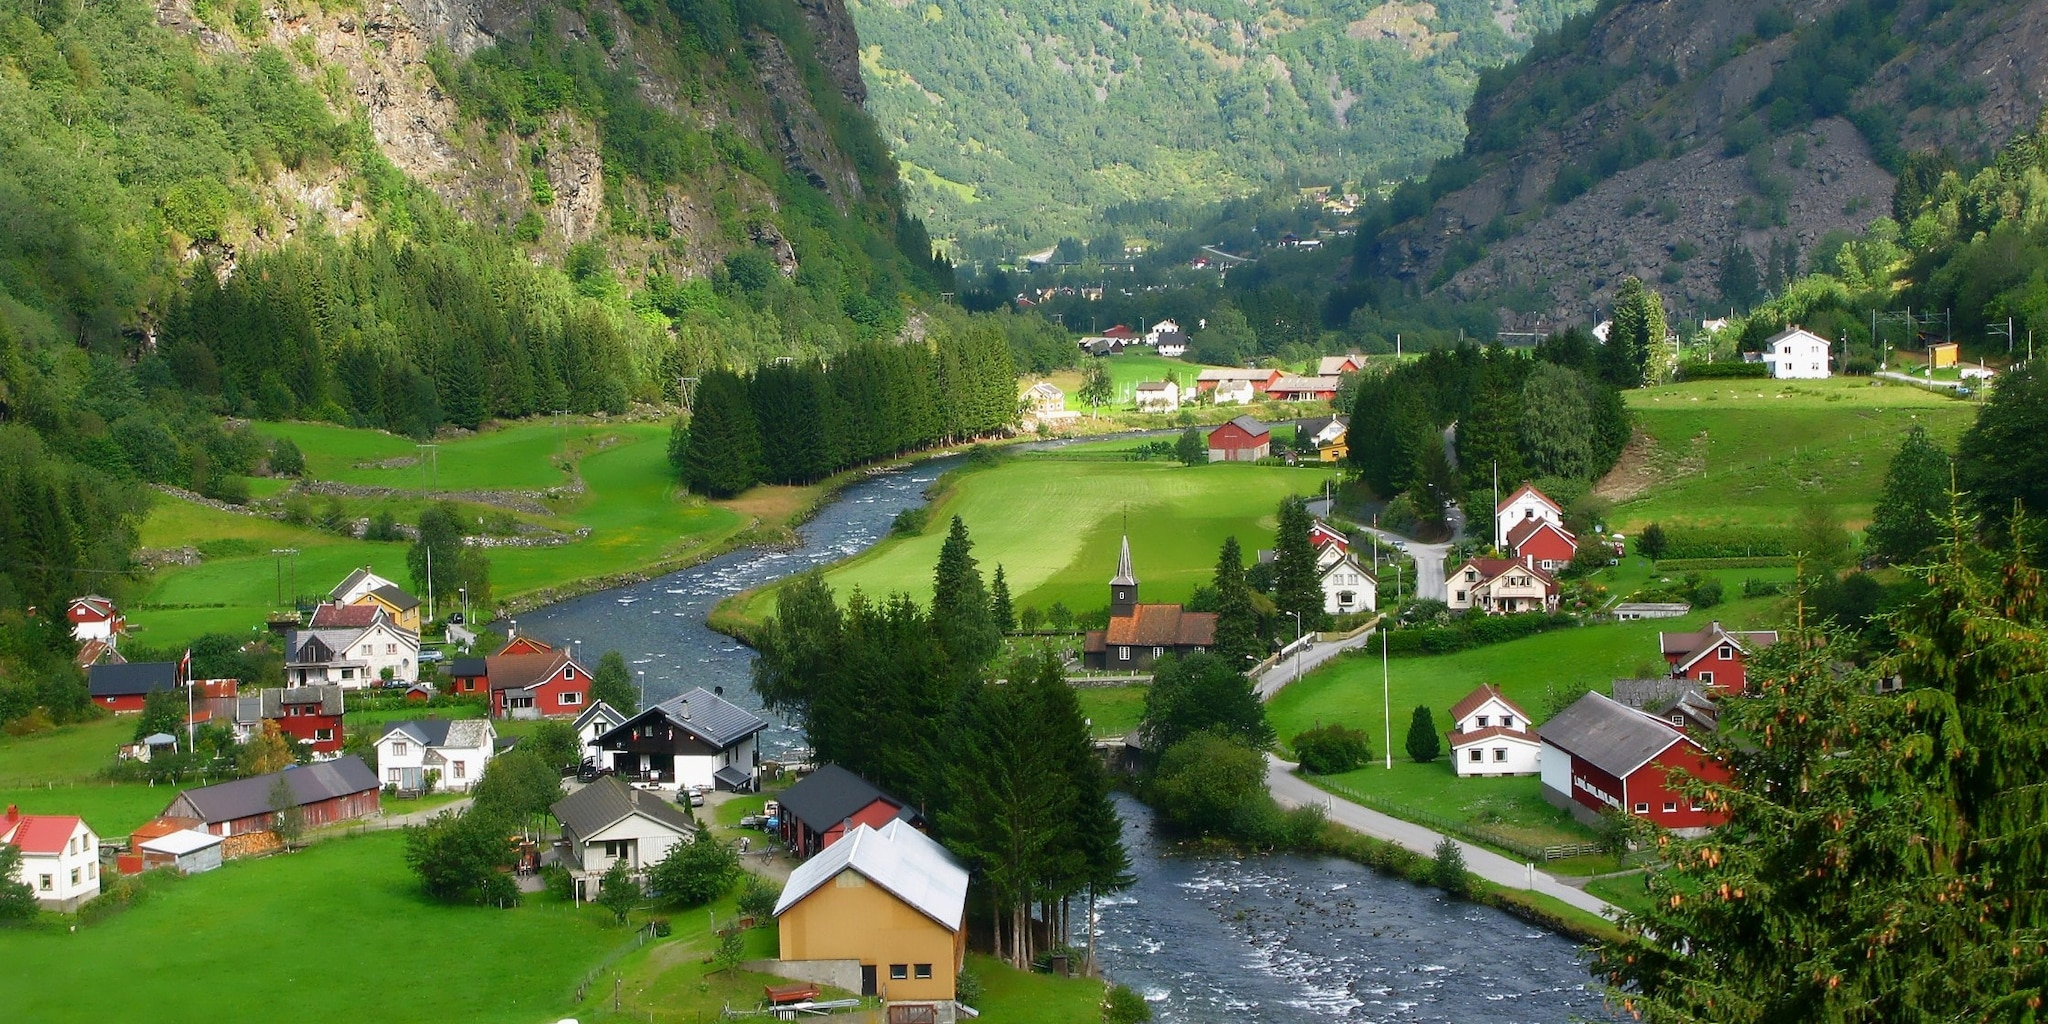 A fjord runs right through the center of the small, picturesque town of Flam